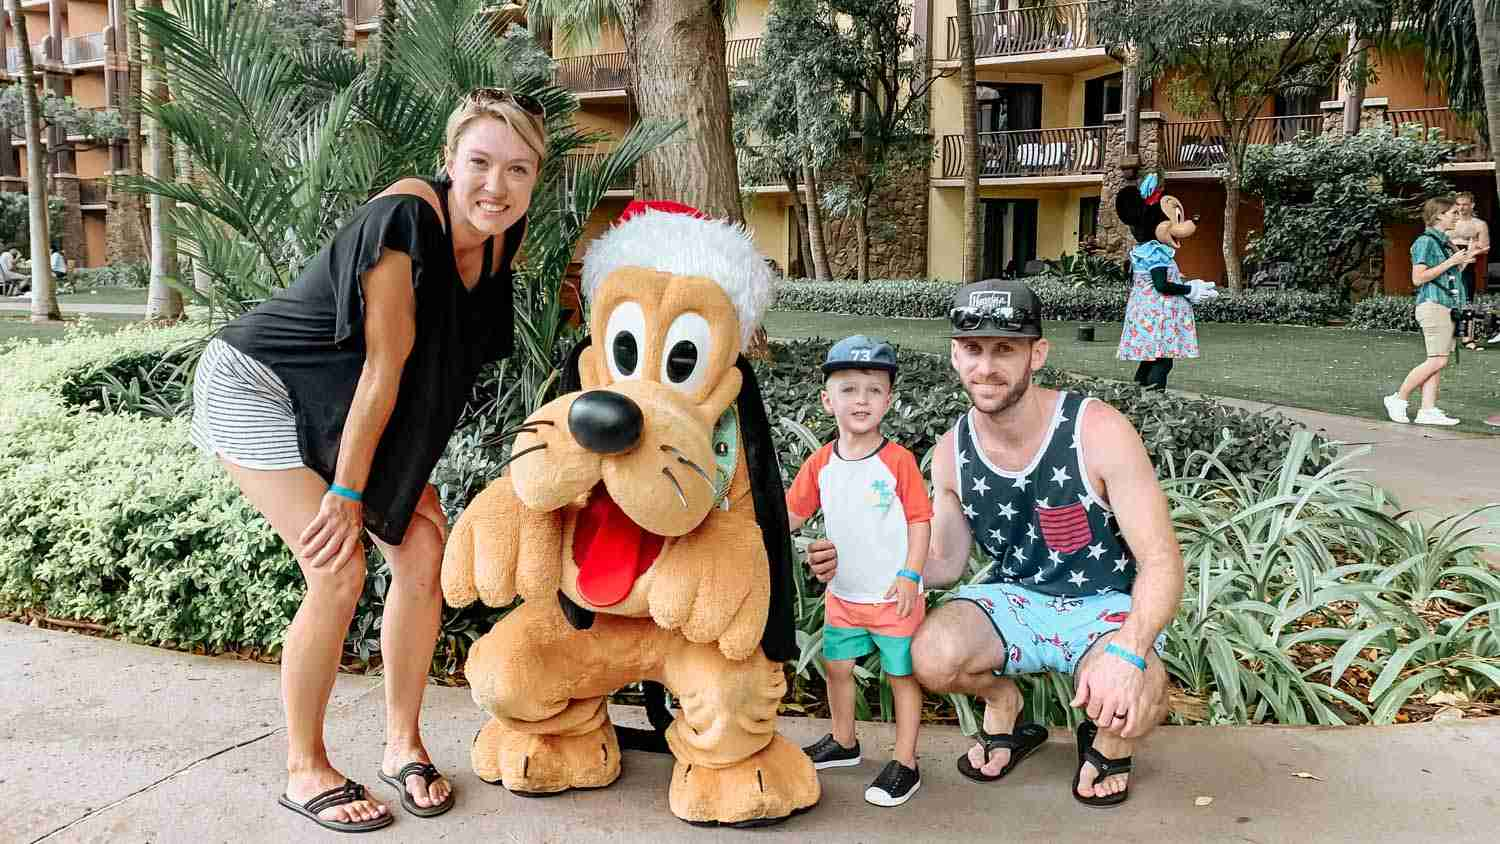 Family smiling with the Disney character Pluto at Aulani in Hawaii